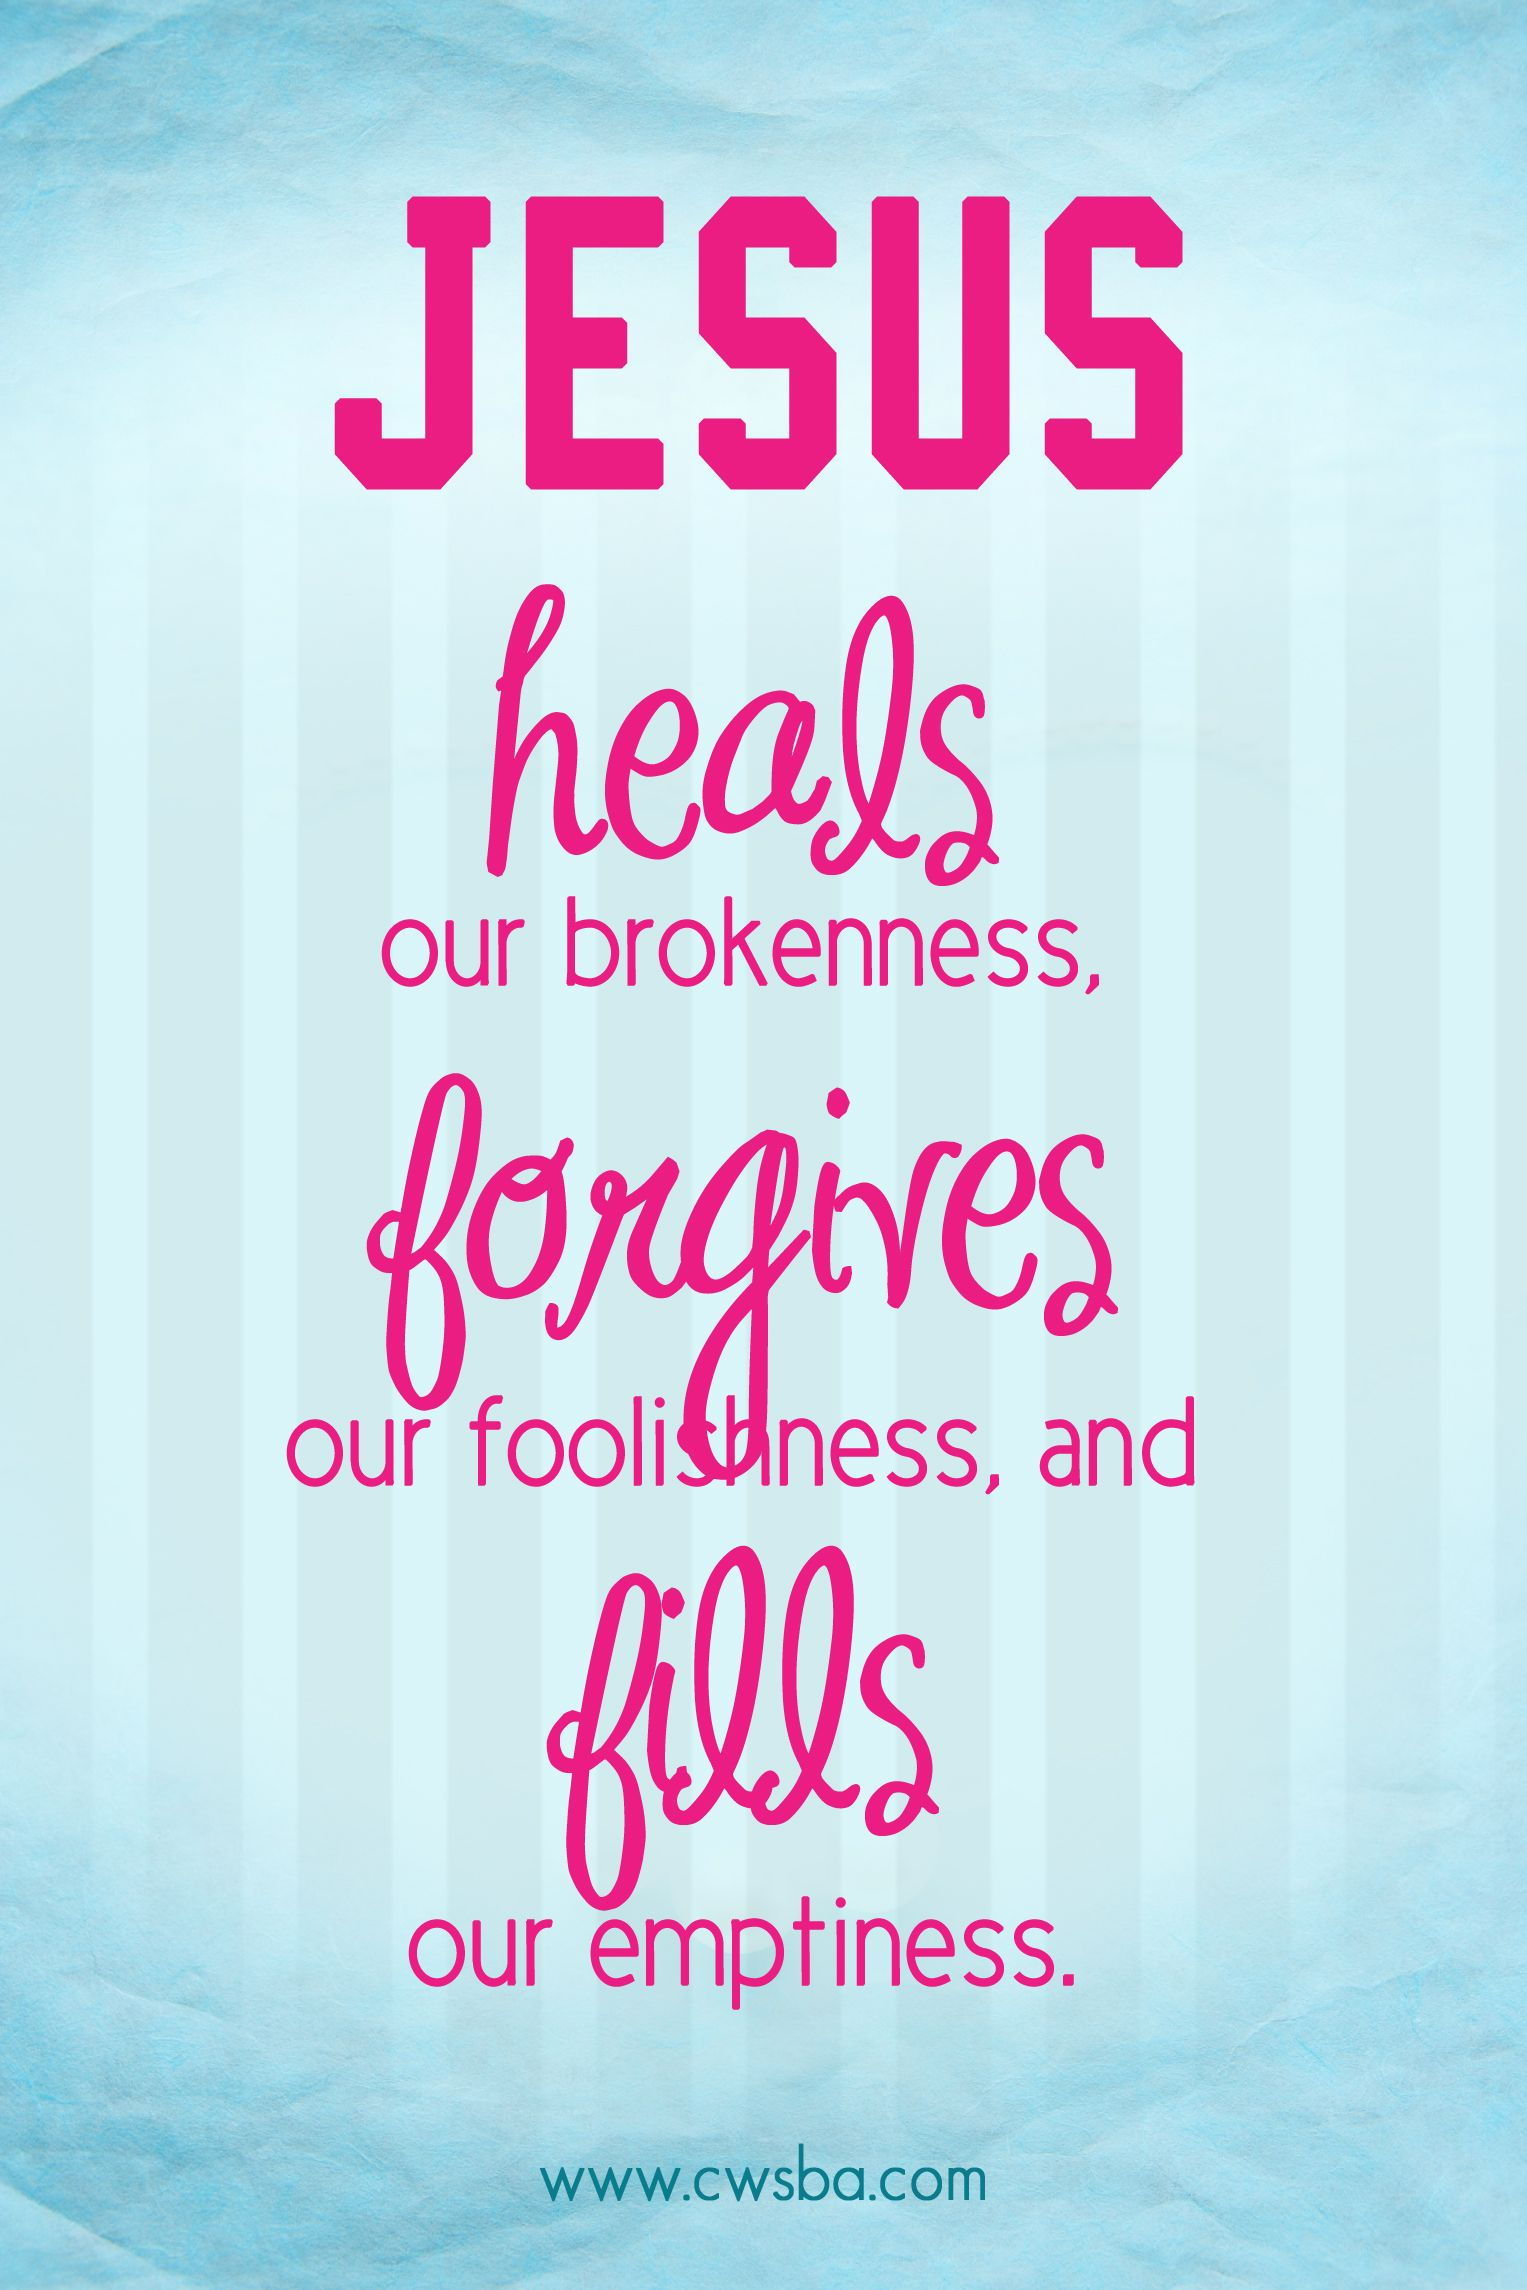 Quotes Jesus Jesus Heals Healed In Jesus' Name  Pinterest  Jesus Heals